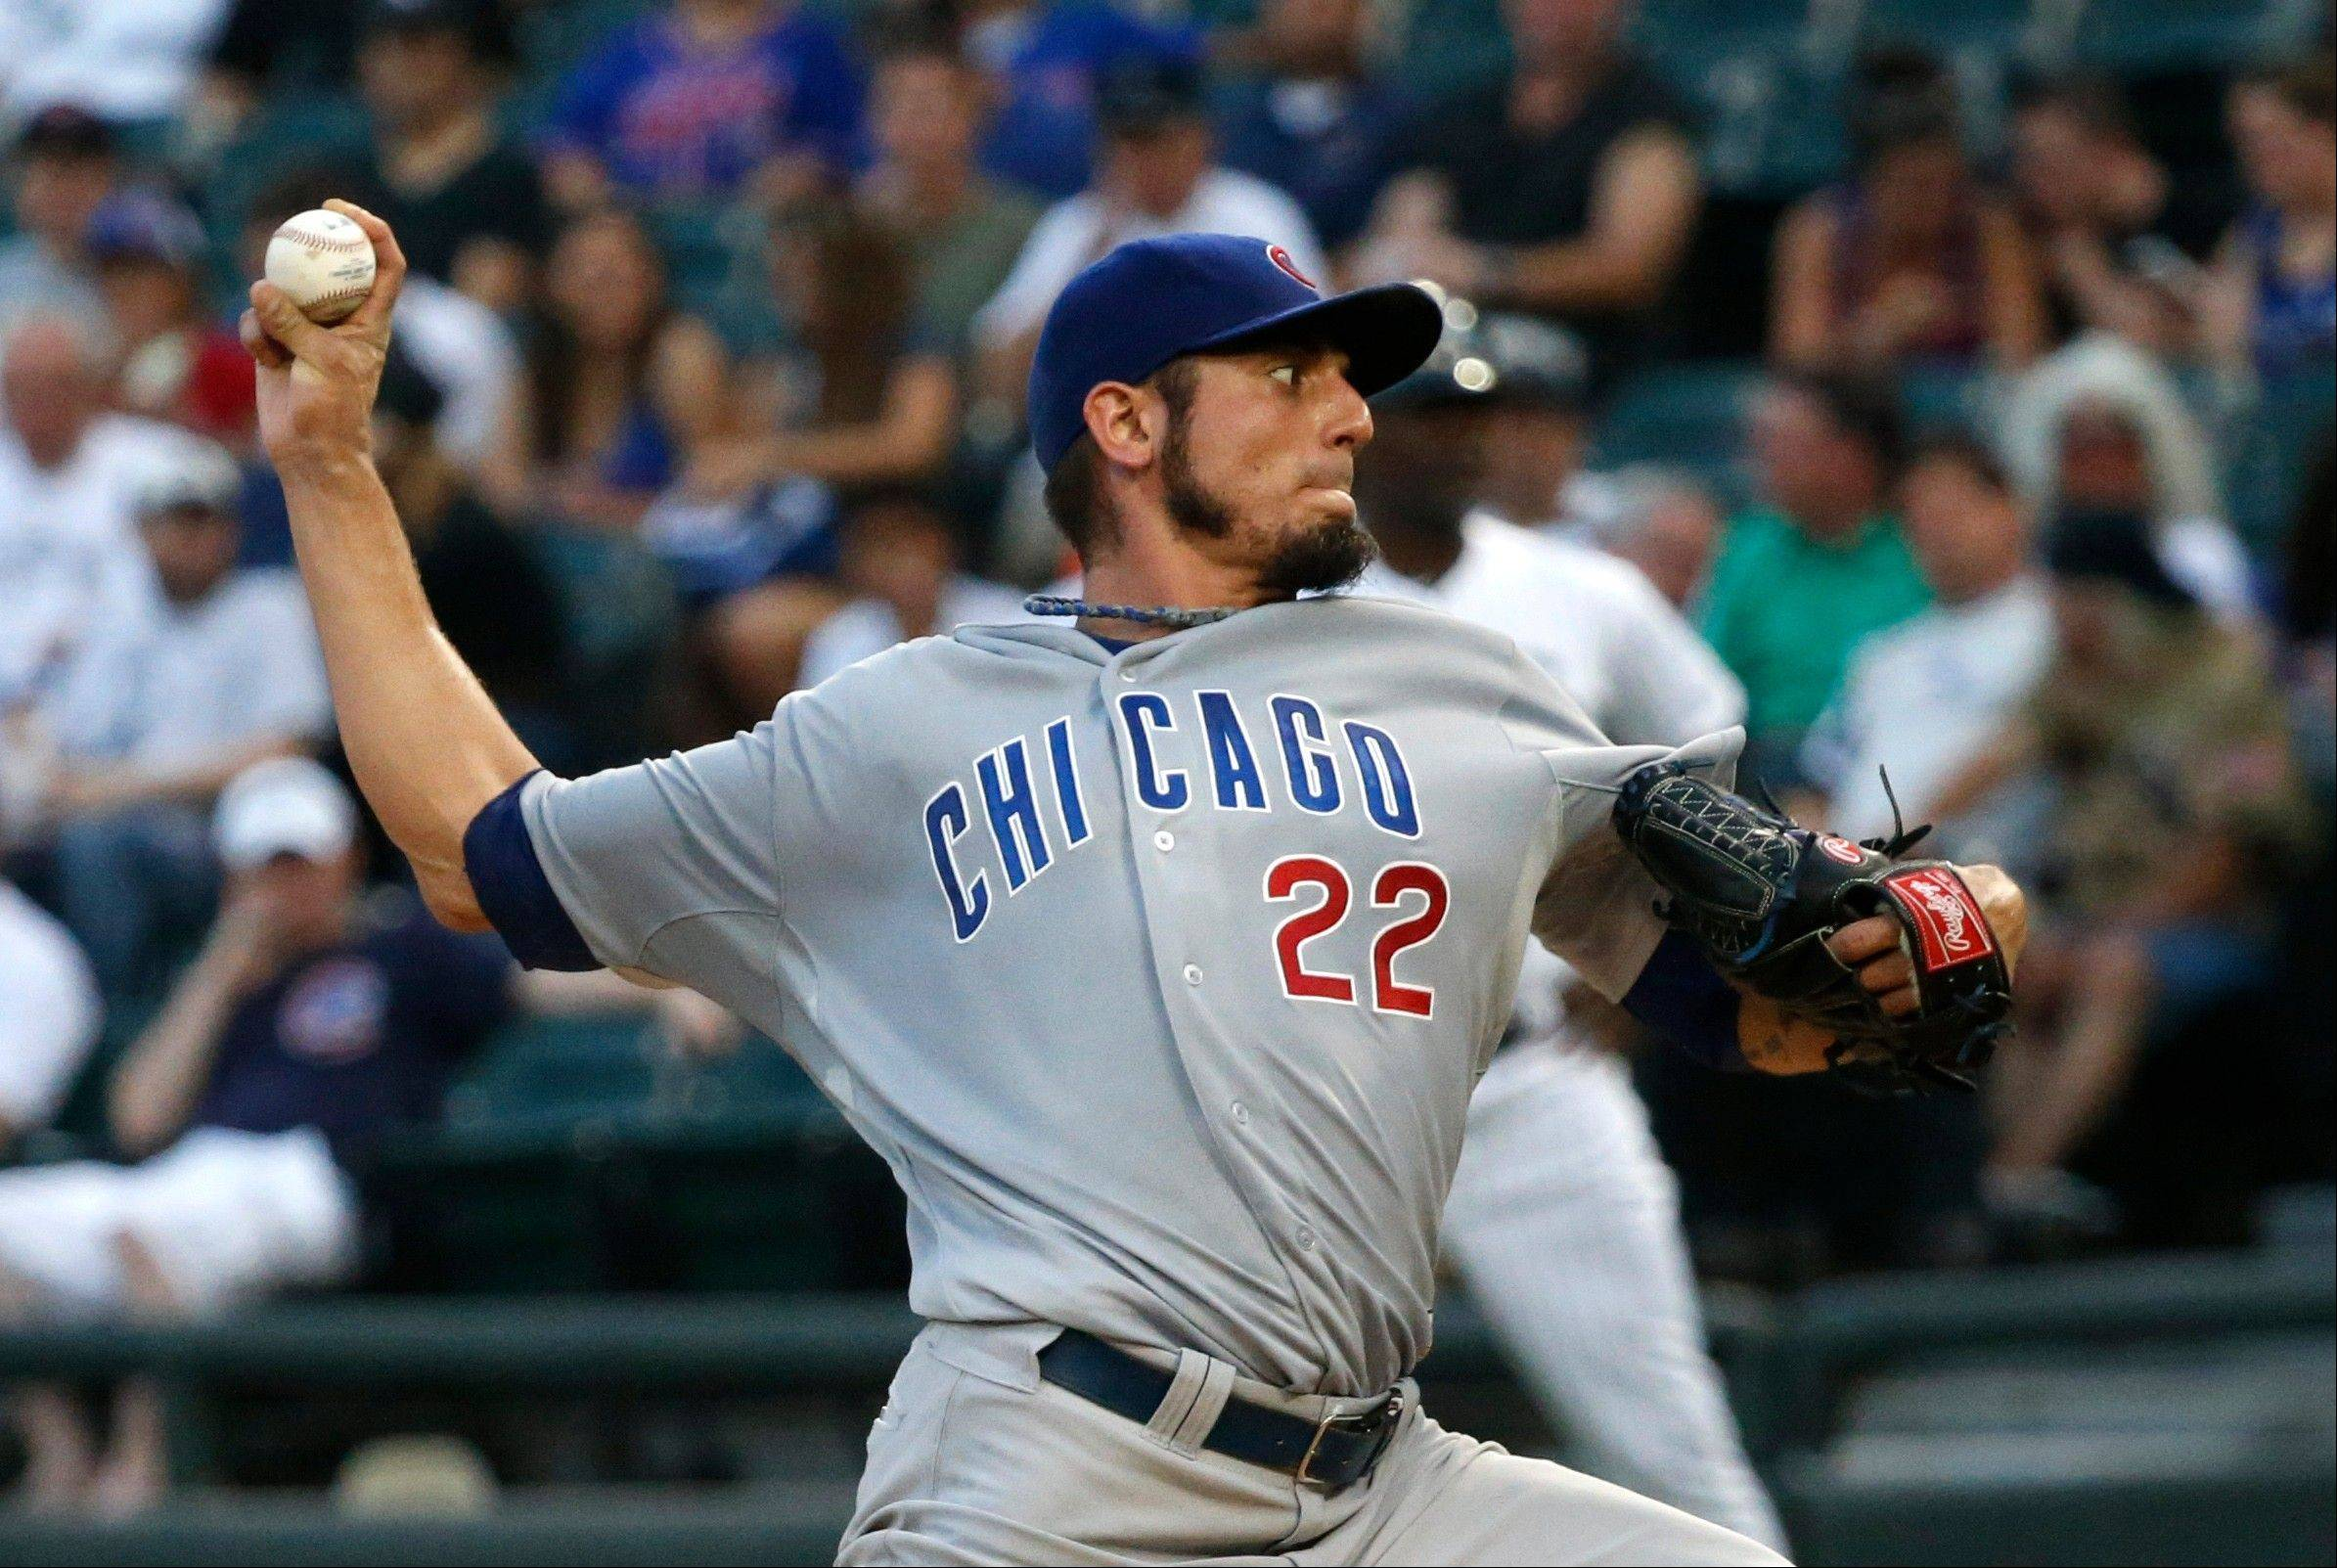 Despite Internet reports Monday, Matt Garza likely won't be making many more starts for the Cubs, even after his strong outing against the White Sox.